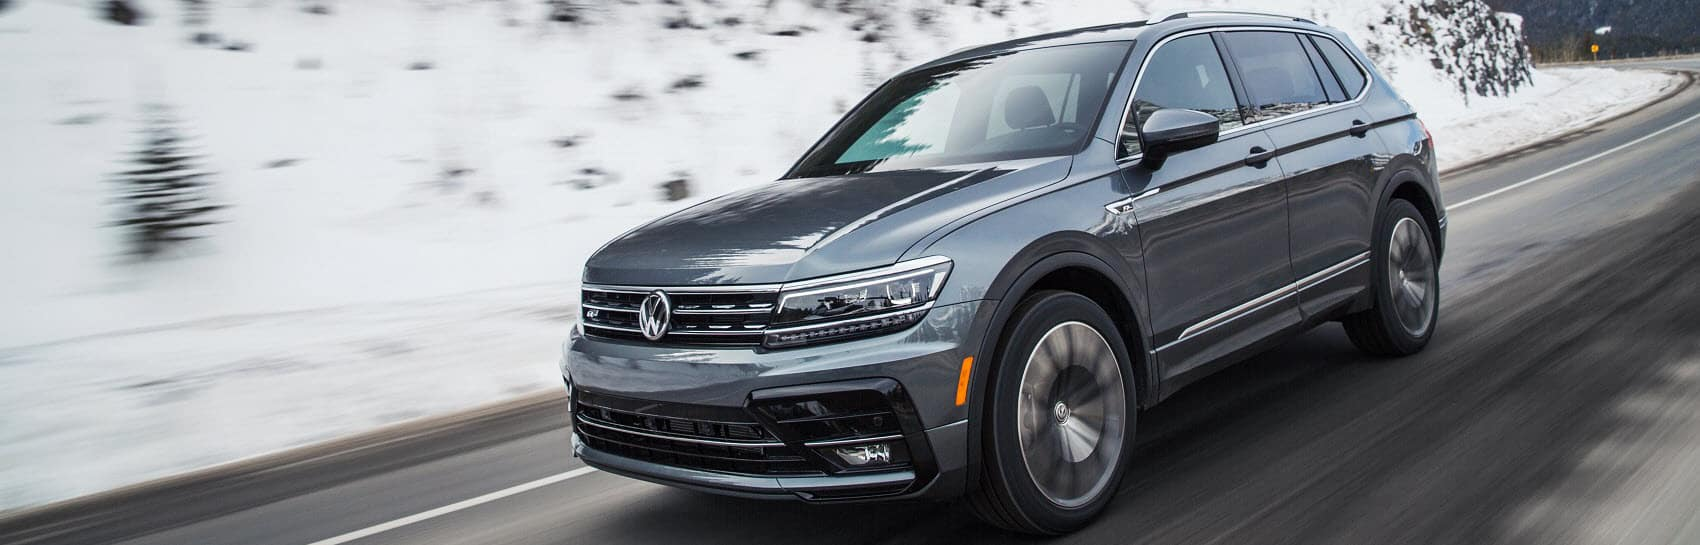 2019 Volkswagen Tiguan Review